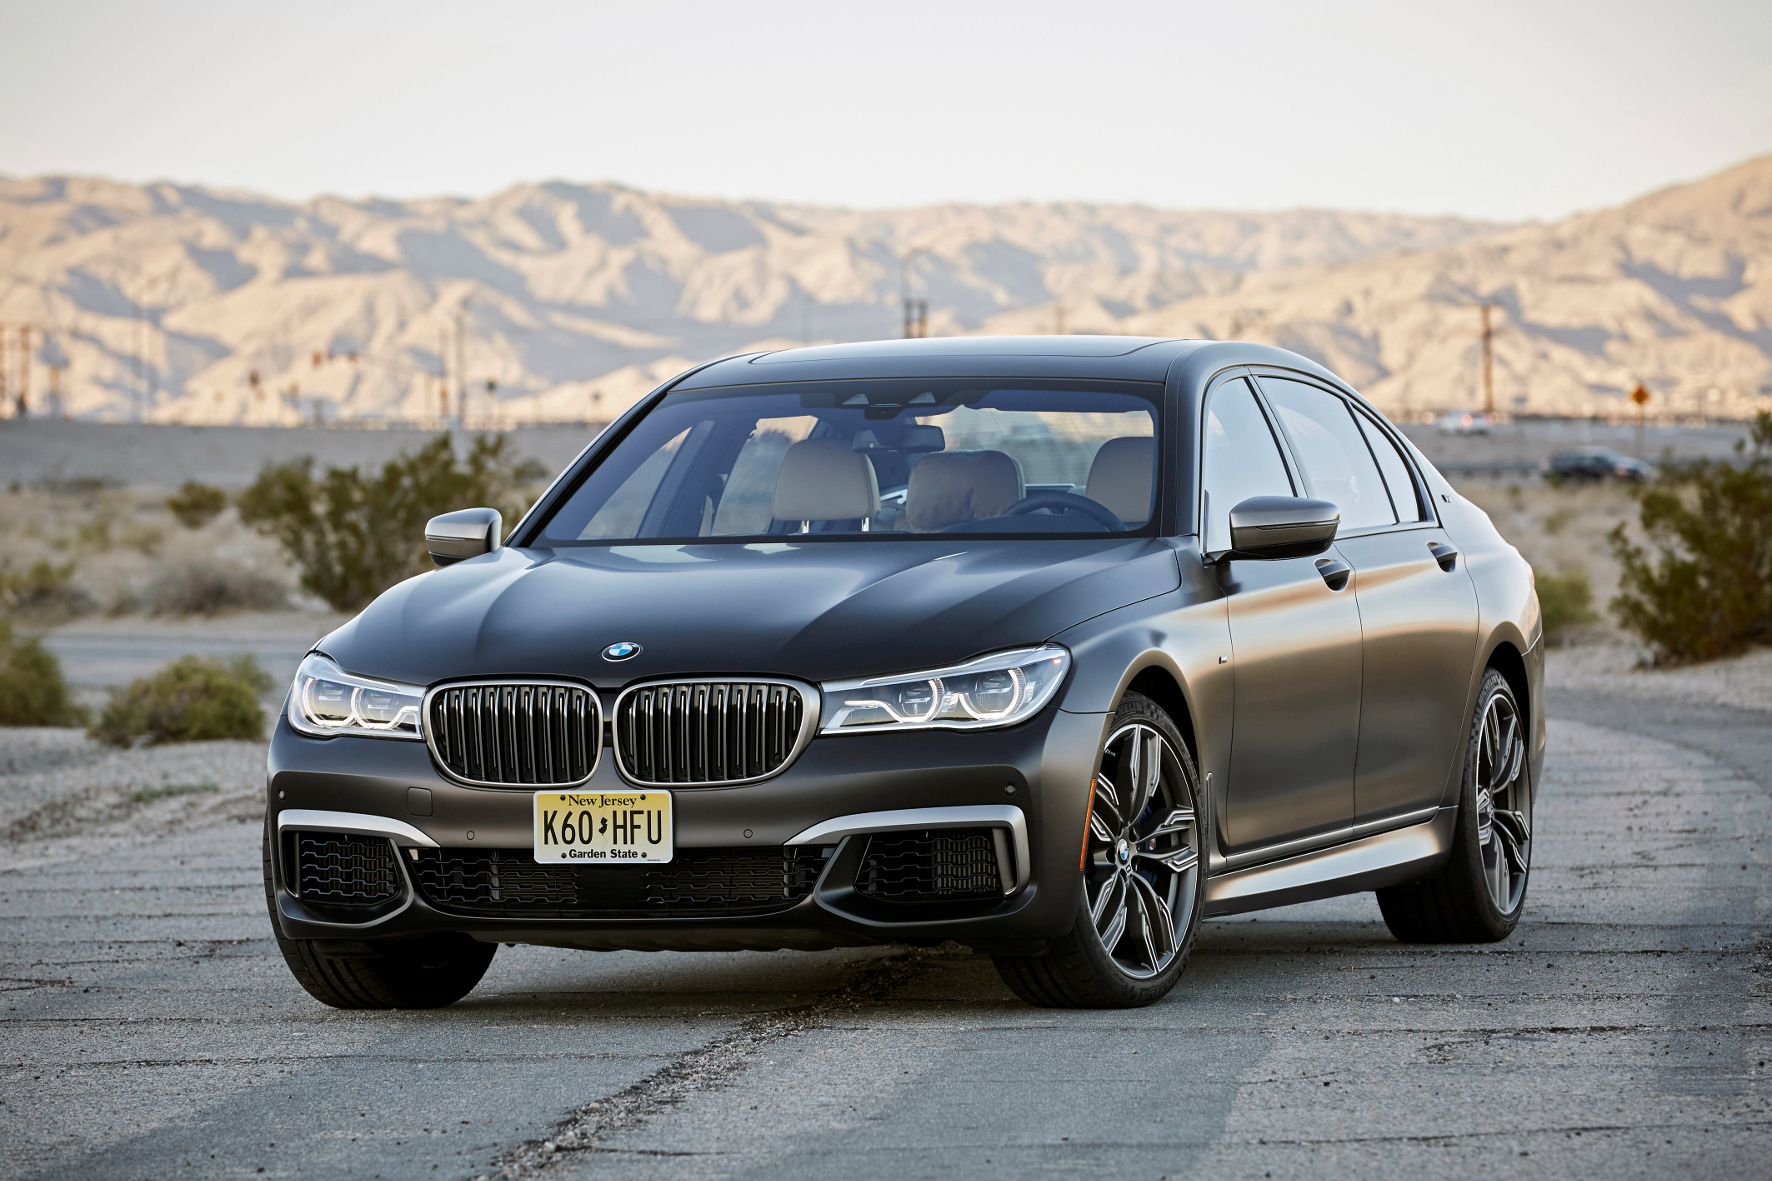 mid Palm Springs - Modellathlet im feinen Business-Dress: Der neue BMW M760Li zeigt, was in ihm steckt - aber nicht protzig, sondern mit einer ordentlichen Portion Understatement.